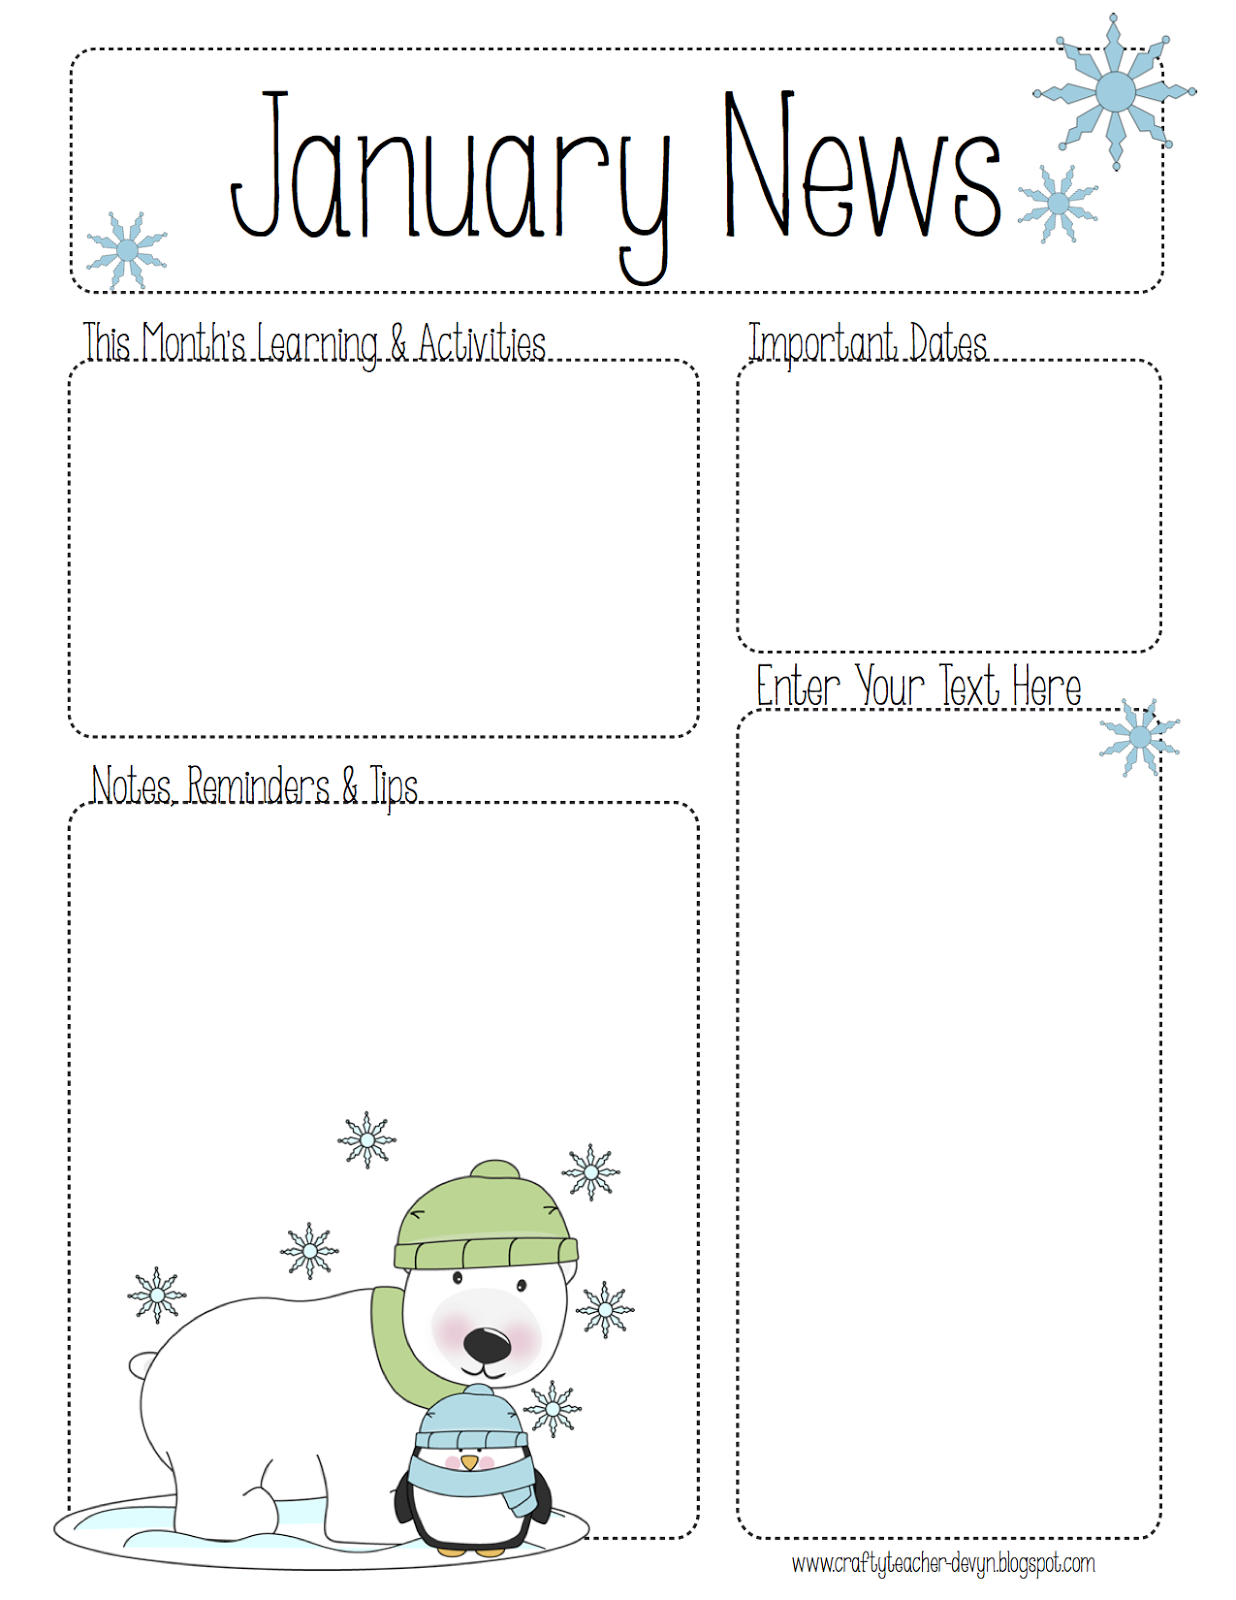 January Newsletter For All Grades Preschool Pre K Kinder Etc